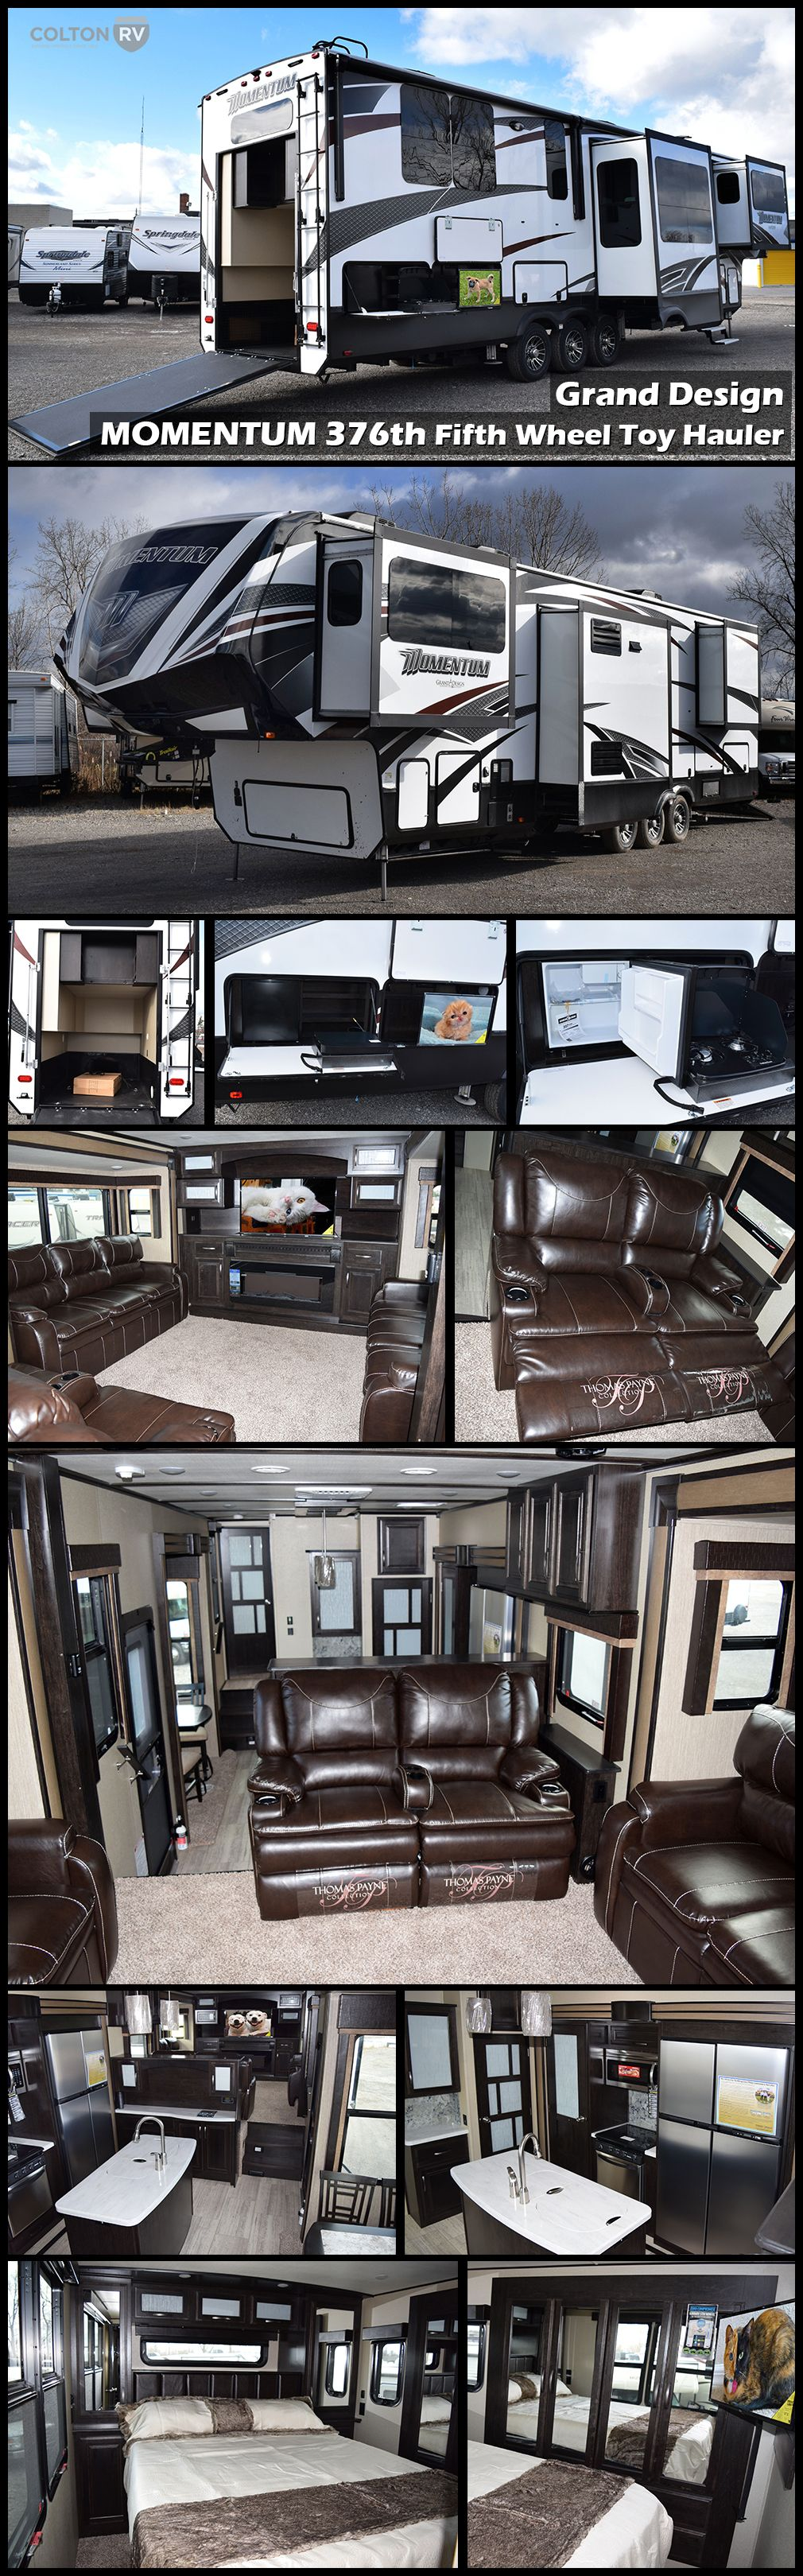 This Unique 2017 Grand Design Momentum 376th Fifth Wheel Toy Hauler Features A Rear Master Bedroom Above Fifth Wheel Toy Haulers Toy Hauler Fifth Wheel Campers